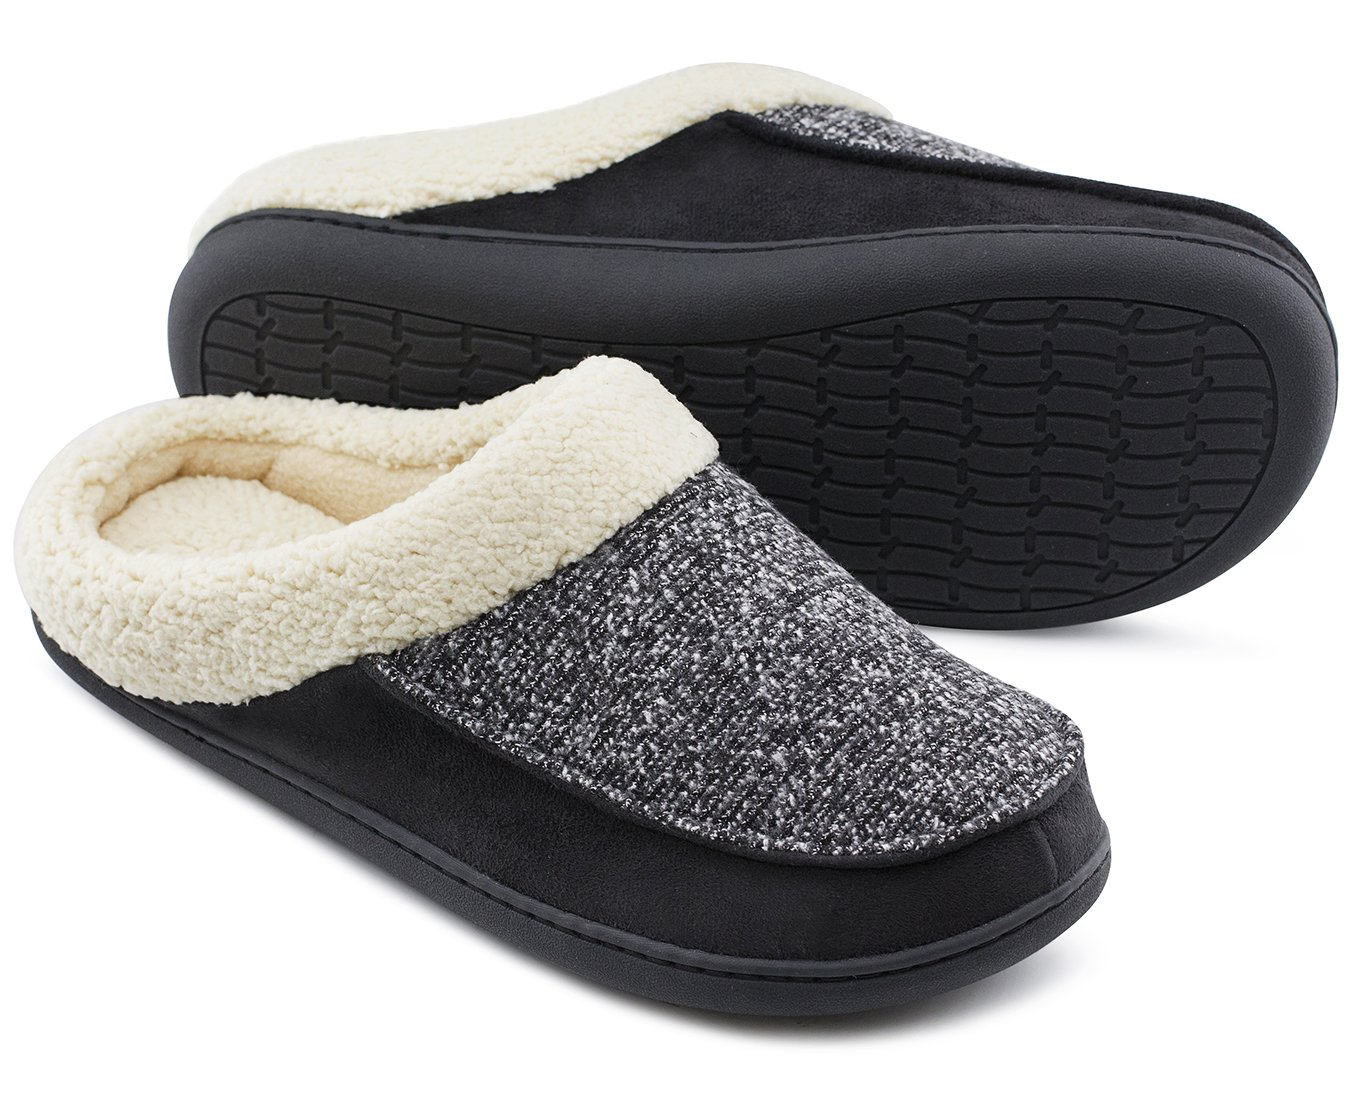 Men's Comfort Memory Foam Slippers Fuzzy Wool Plush Slip-On Clog House Shoes w/Indoor & Outdoor Sole (Large / 11-12 D(M) US, Black)